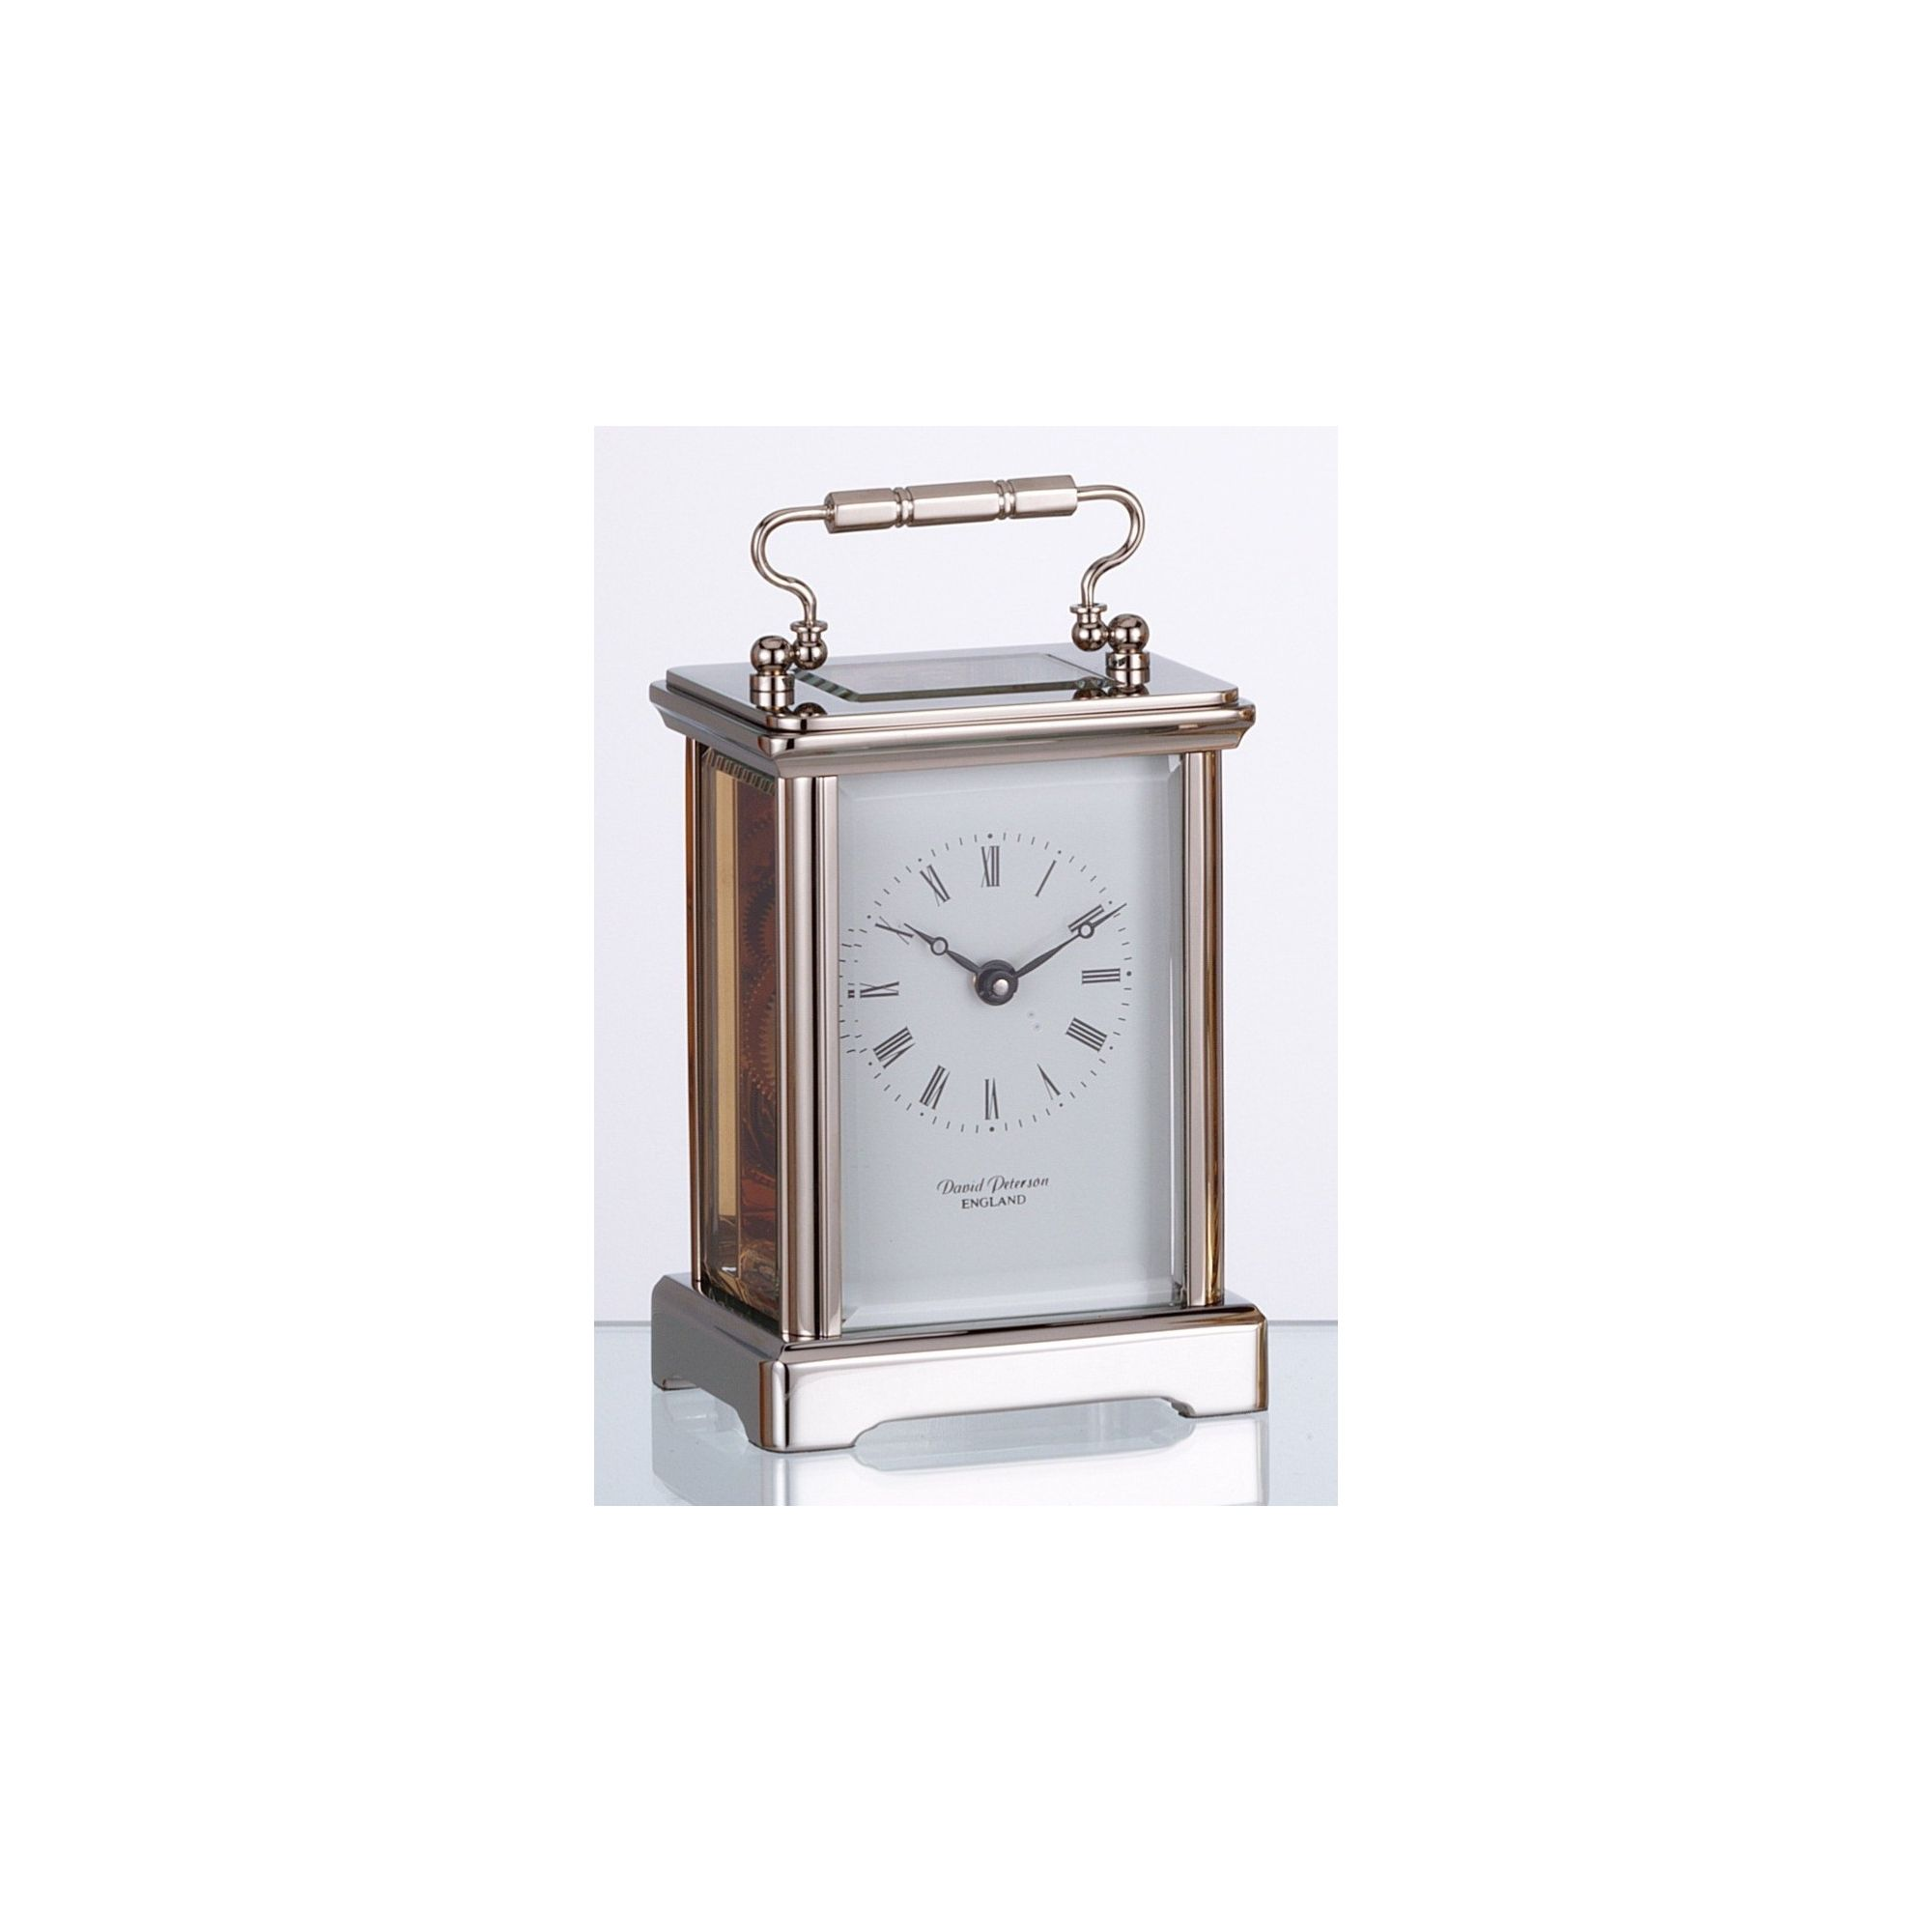 David Peterson Ltd 8 Day Obis Carriage Clock in Chrome at Tesco Direct